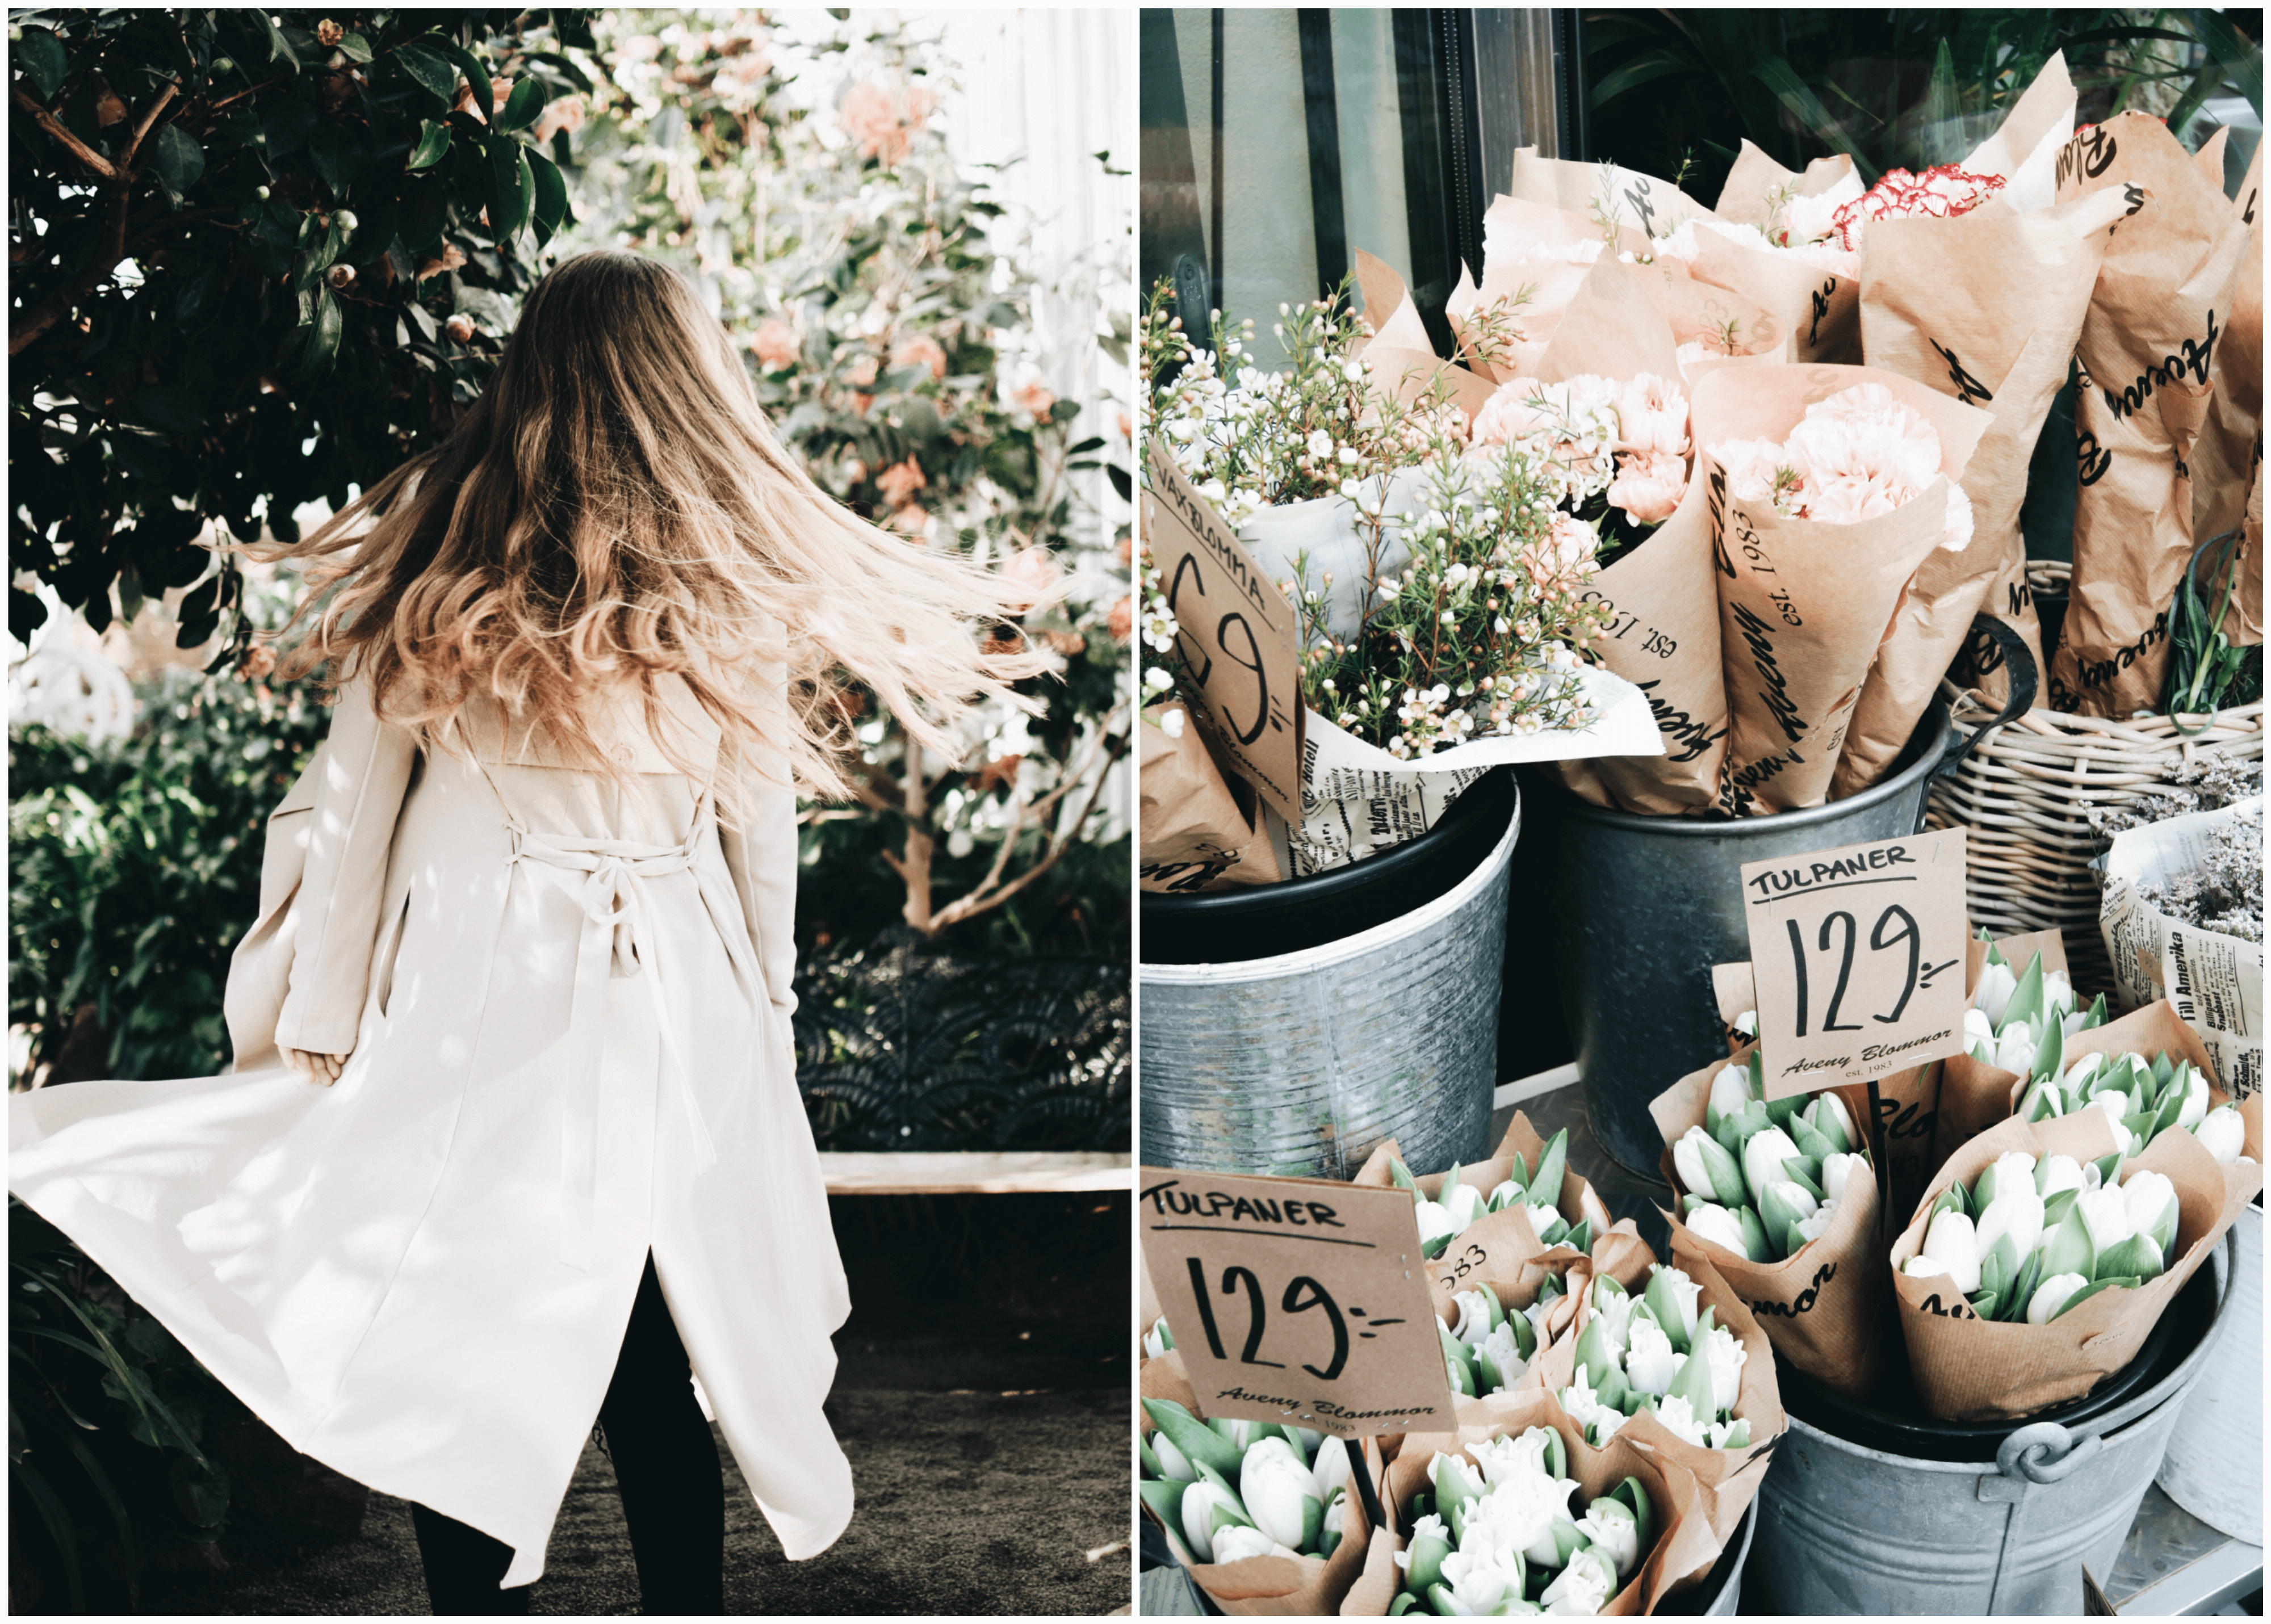 My holiday week – spring photoshoot in the palm house with Amanda!